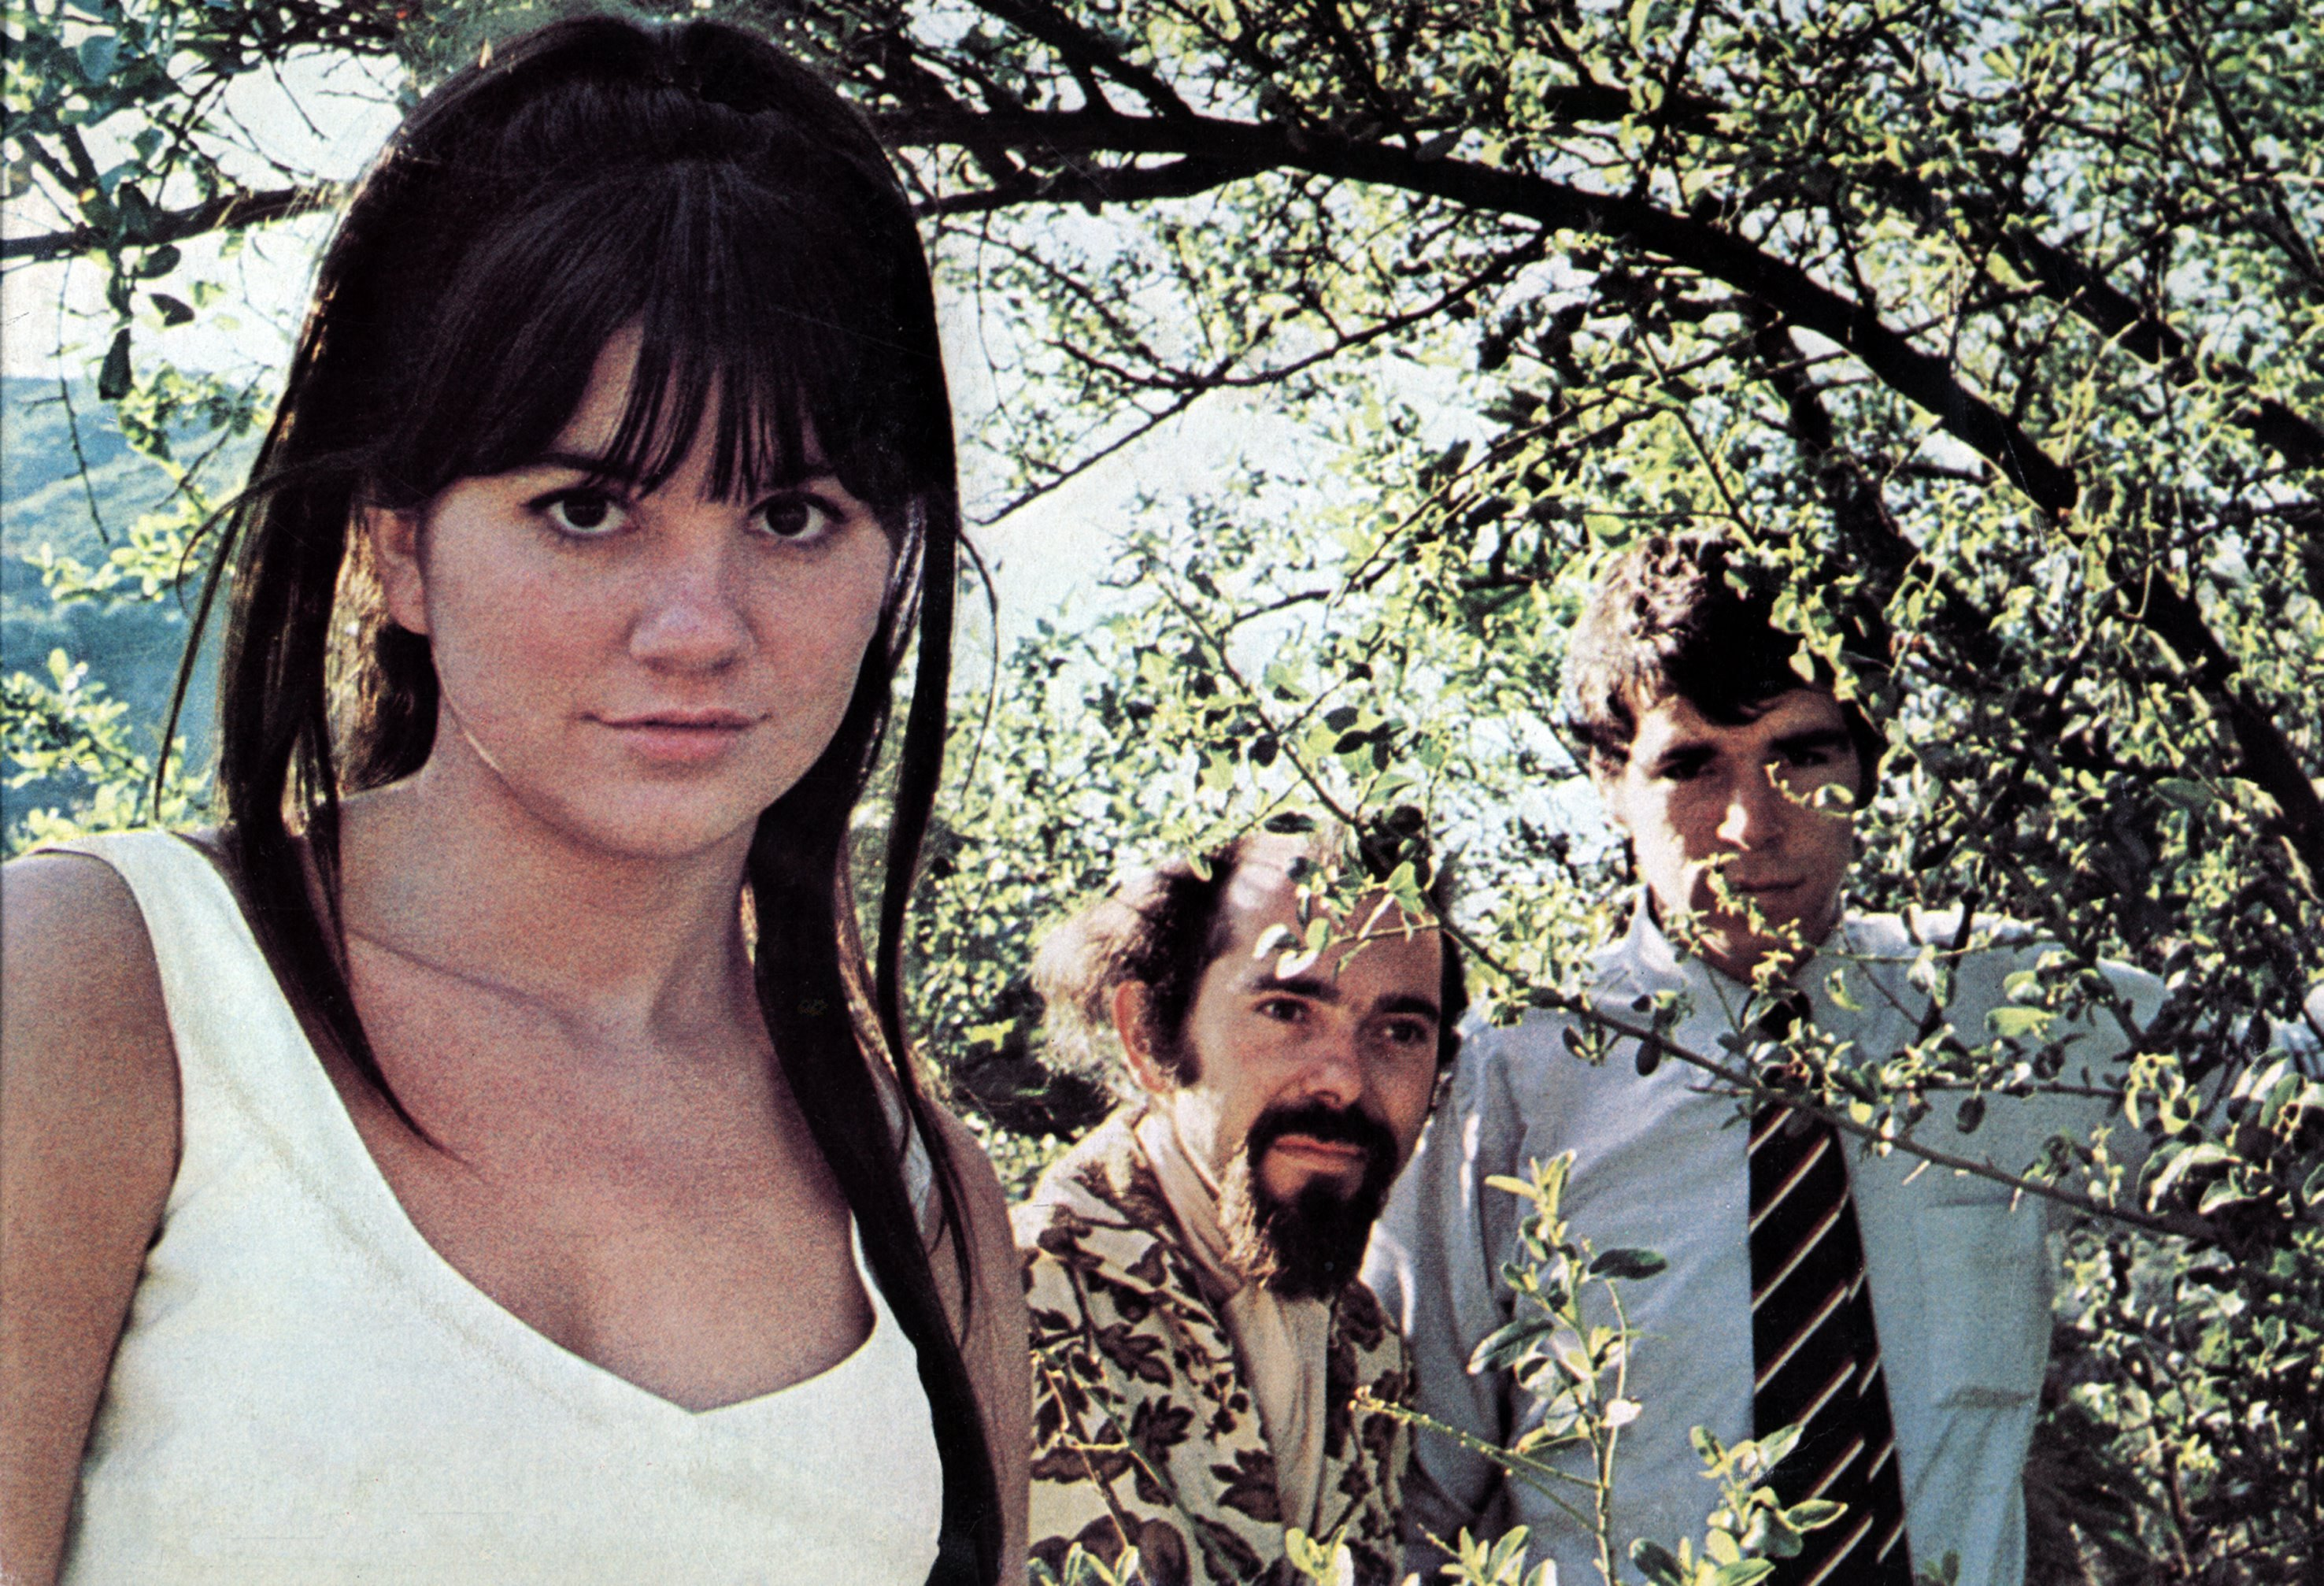 Tucson In The 70s >> Puget Sound Radio | Linda Ronstead & the Stone Poneys have today's almost forgotten track ...